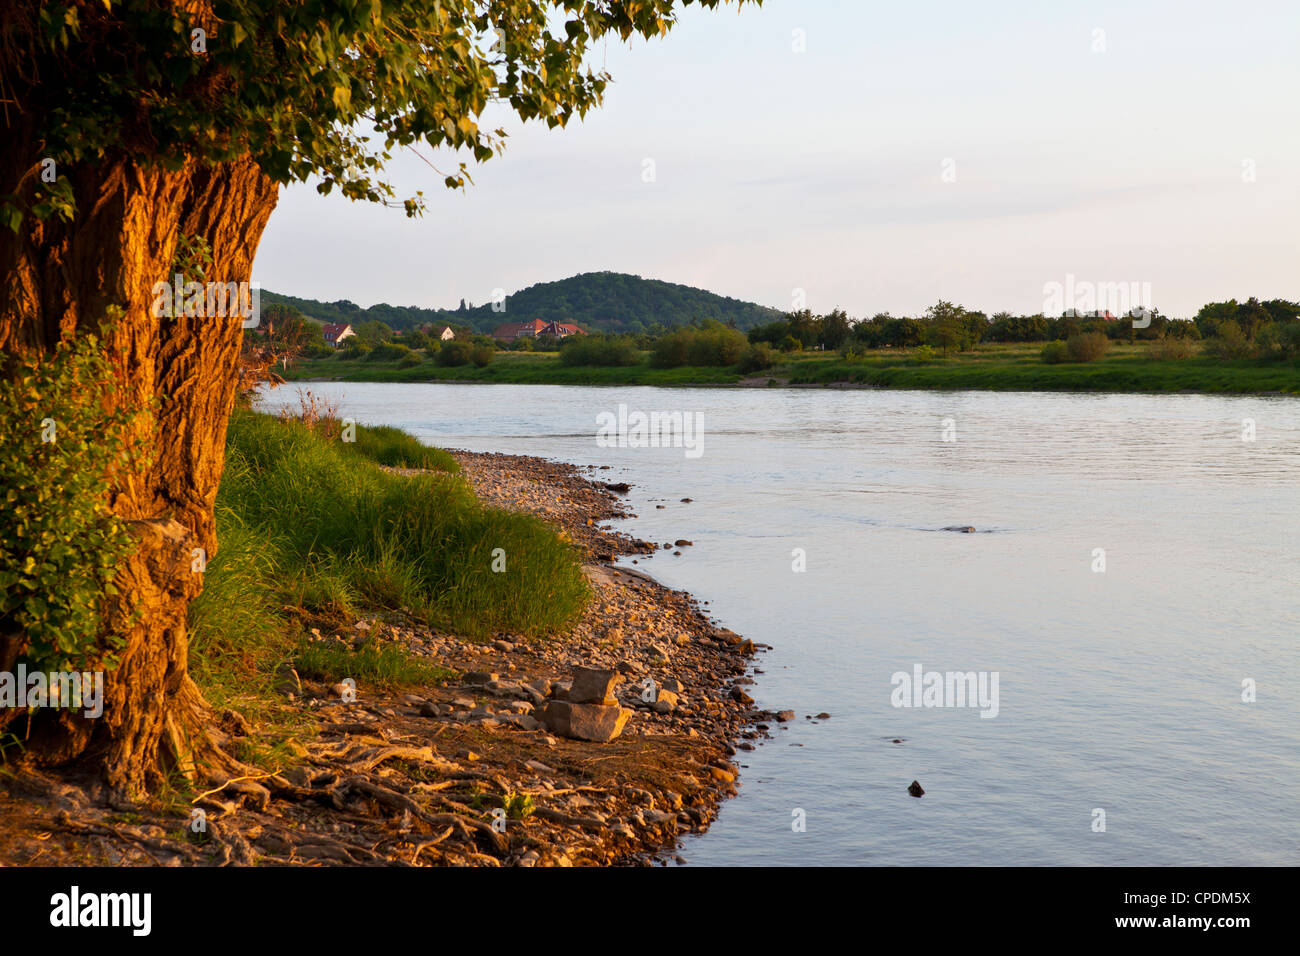 The mighty River Elbe, Saxony, Germany, Europe - Stock Image